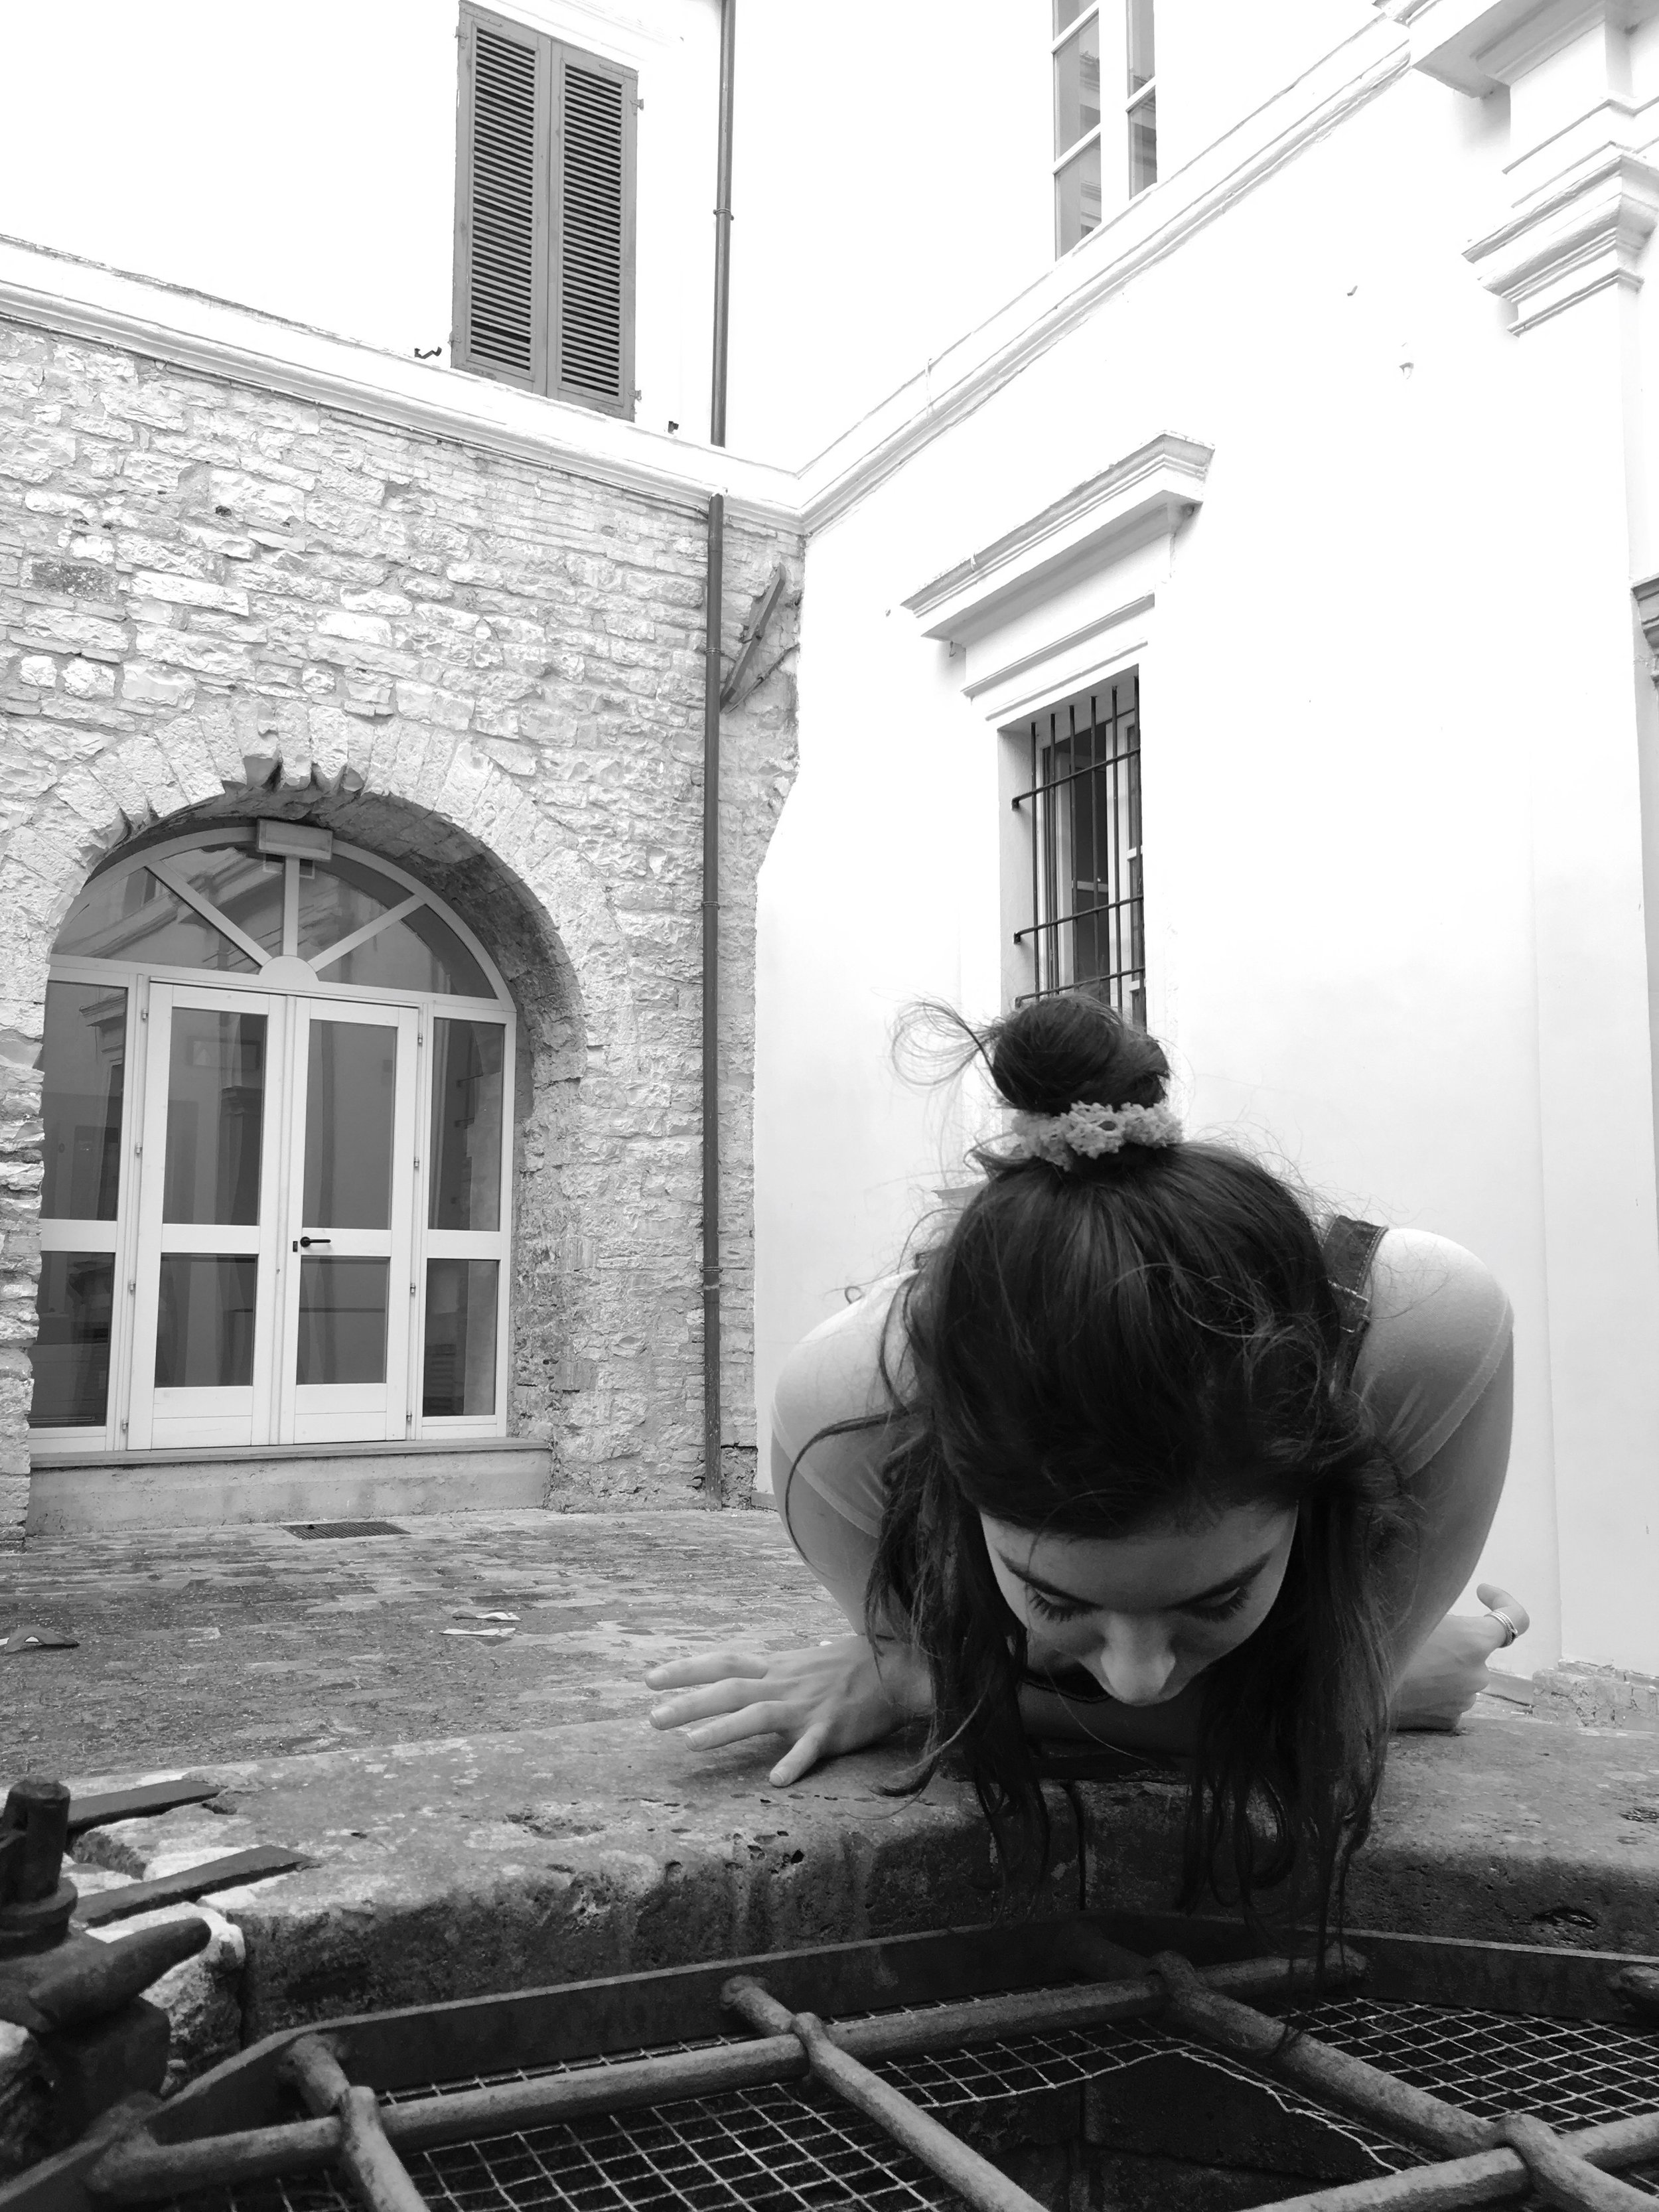 Siena and the well